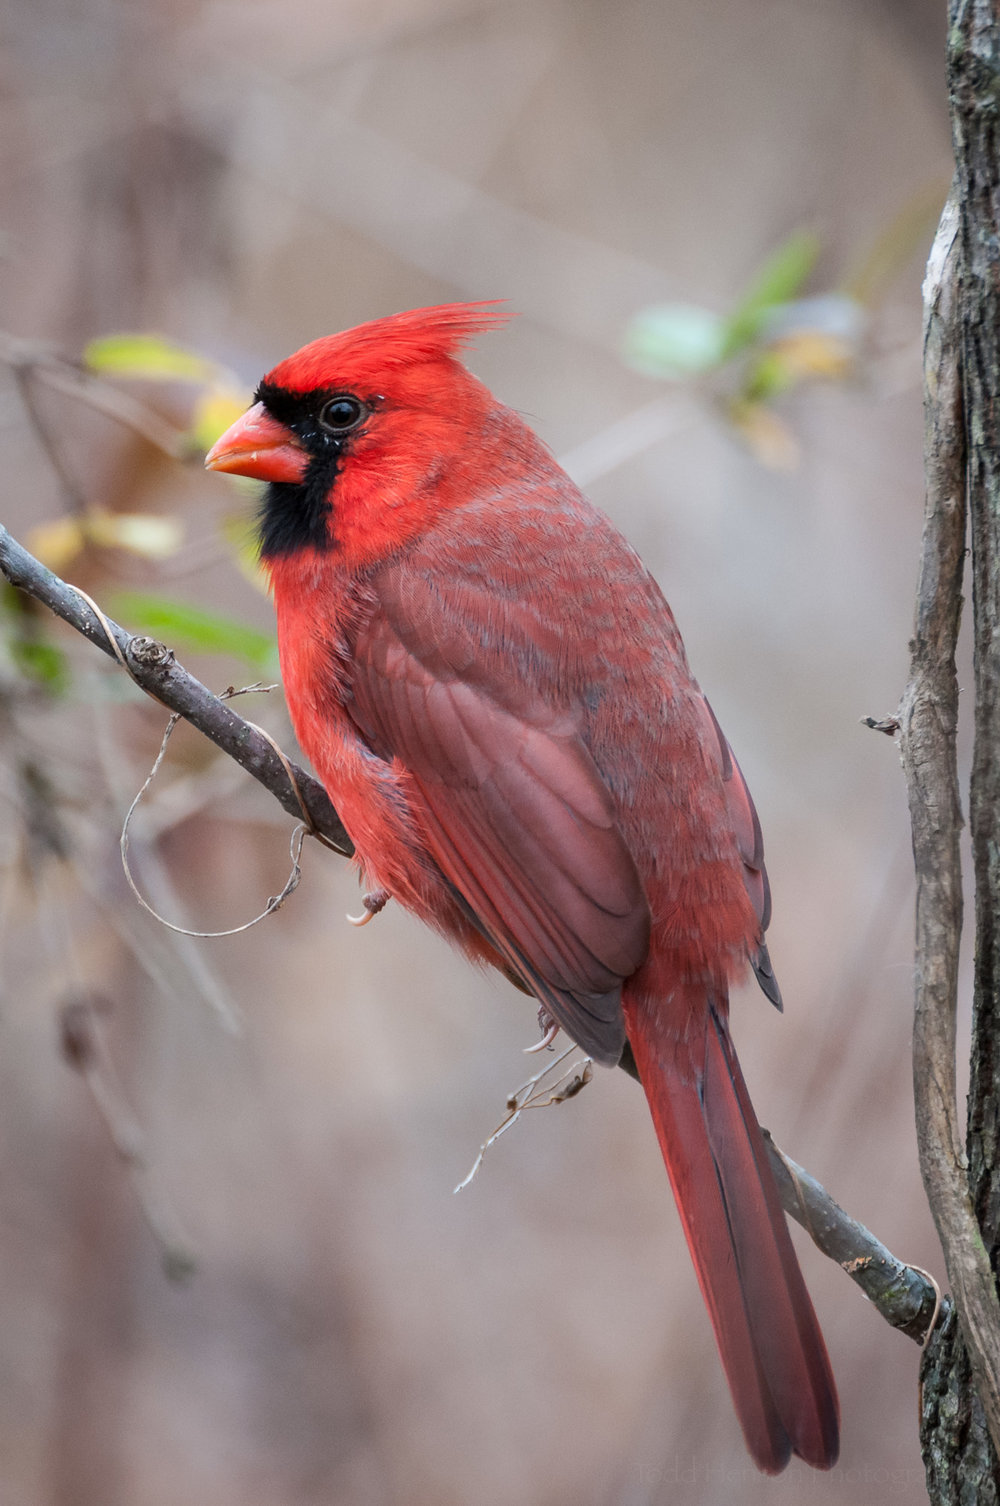 Bright red male Northern Cardinal perched on a branch